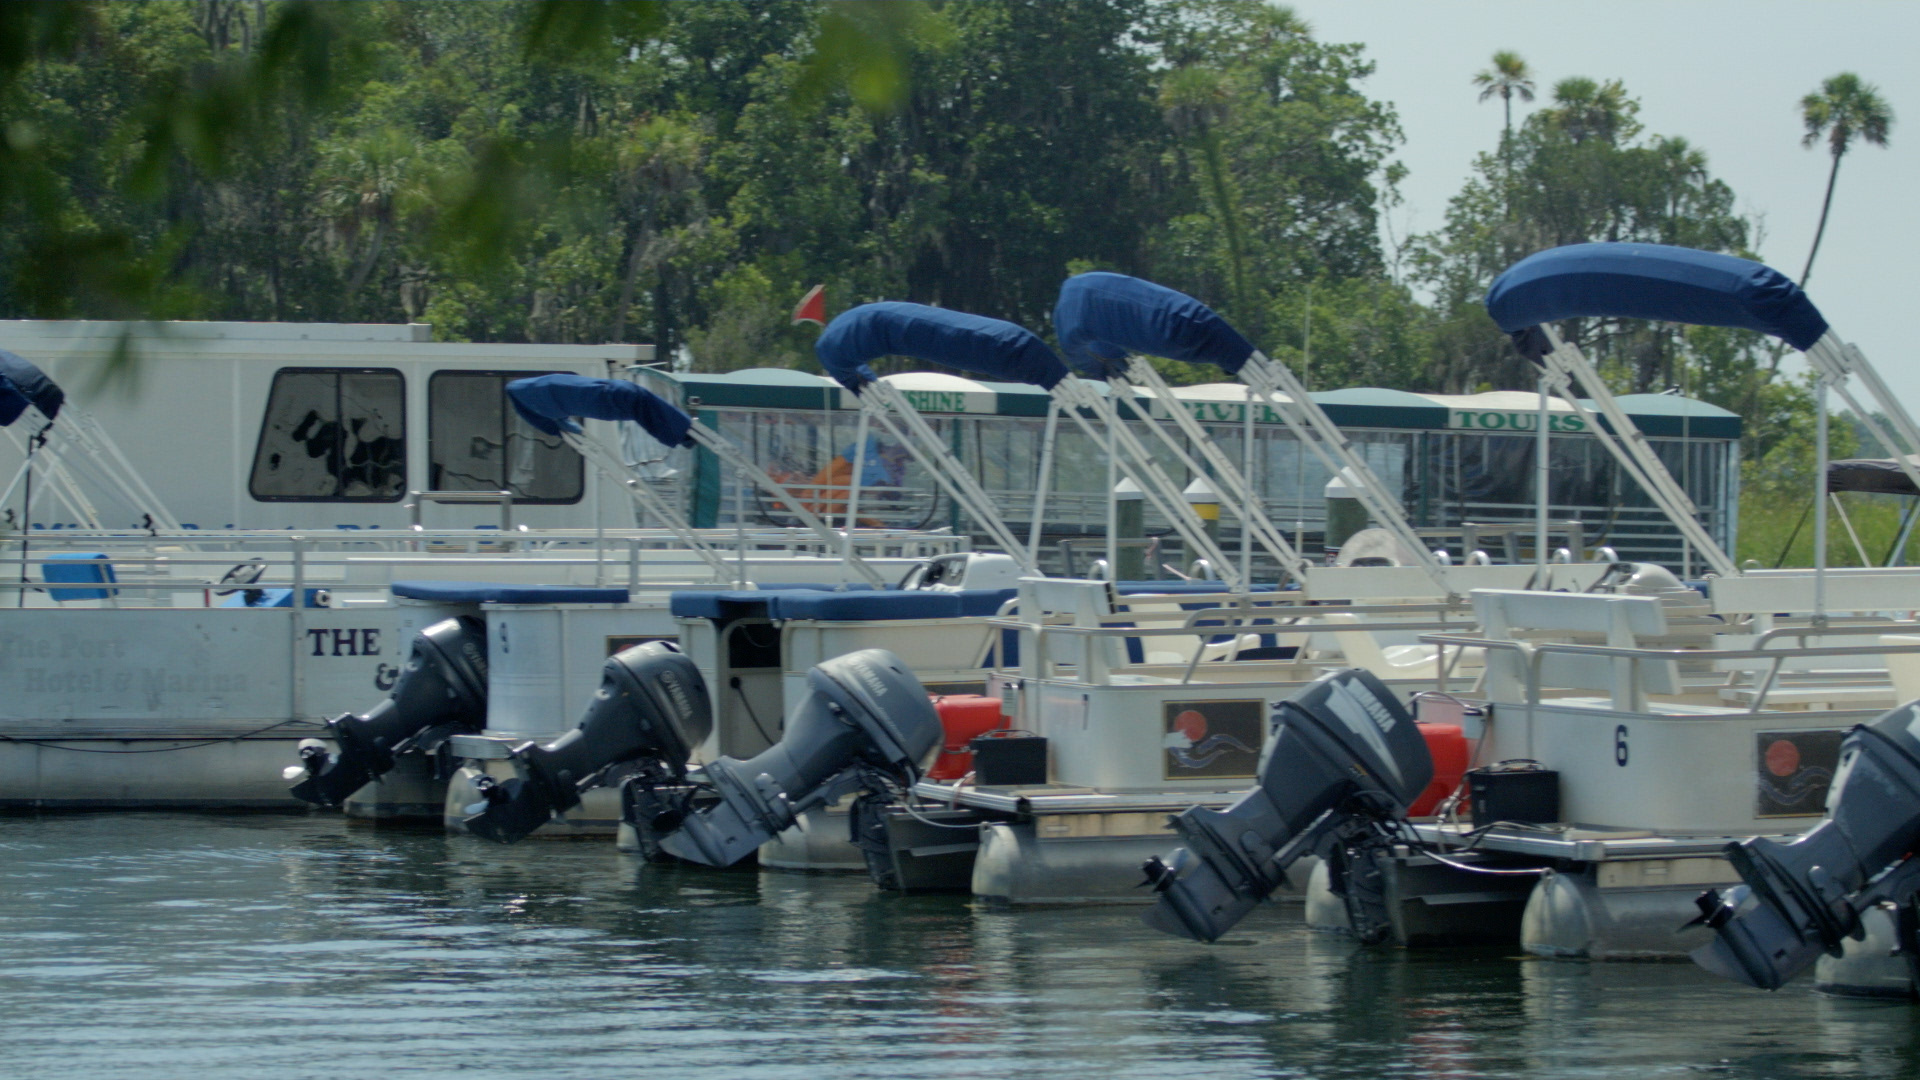 Press Release: Manatee Tours Getting a New Boat